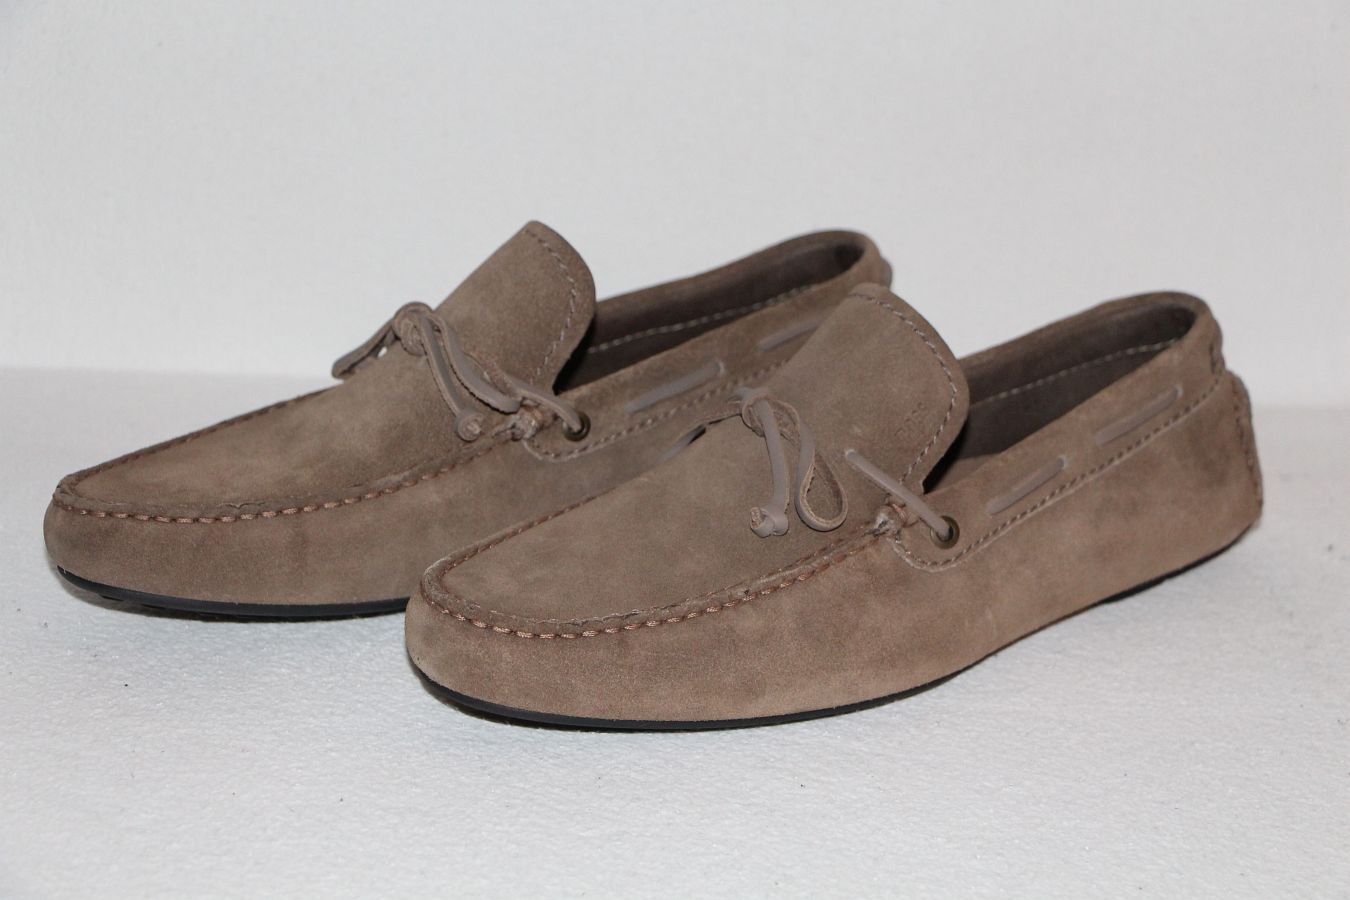 HUGO BOSS MOKASSINS, Mod. Reallio, Gr. EU 43,5    UK 9.5   US 10.5 Medium Beige